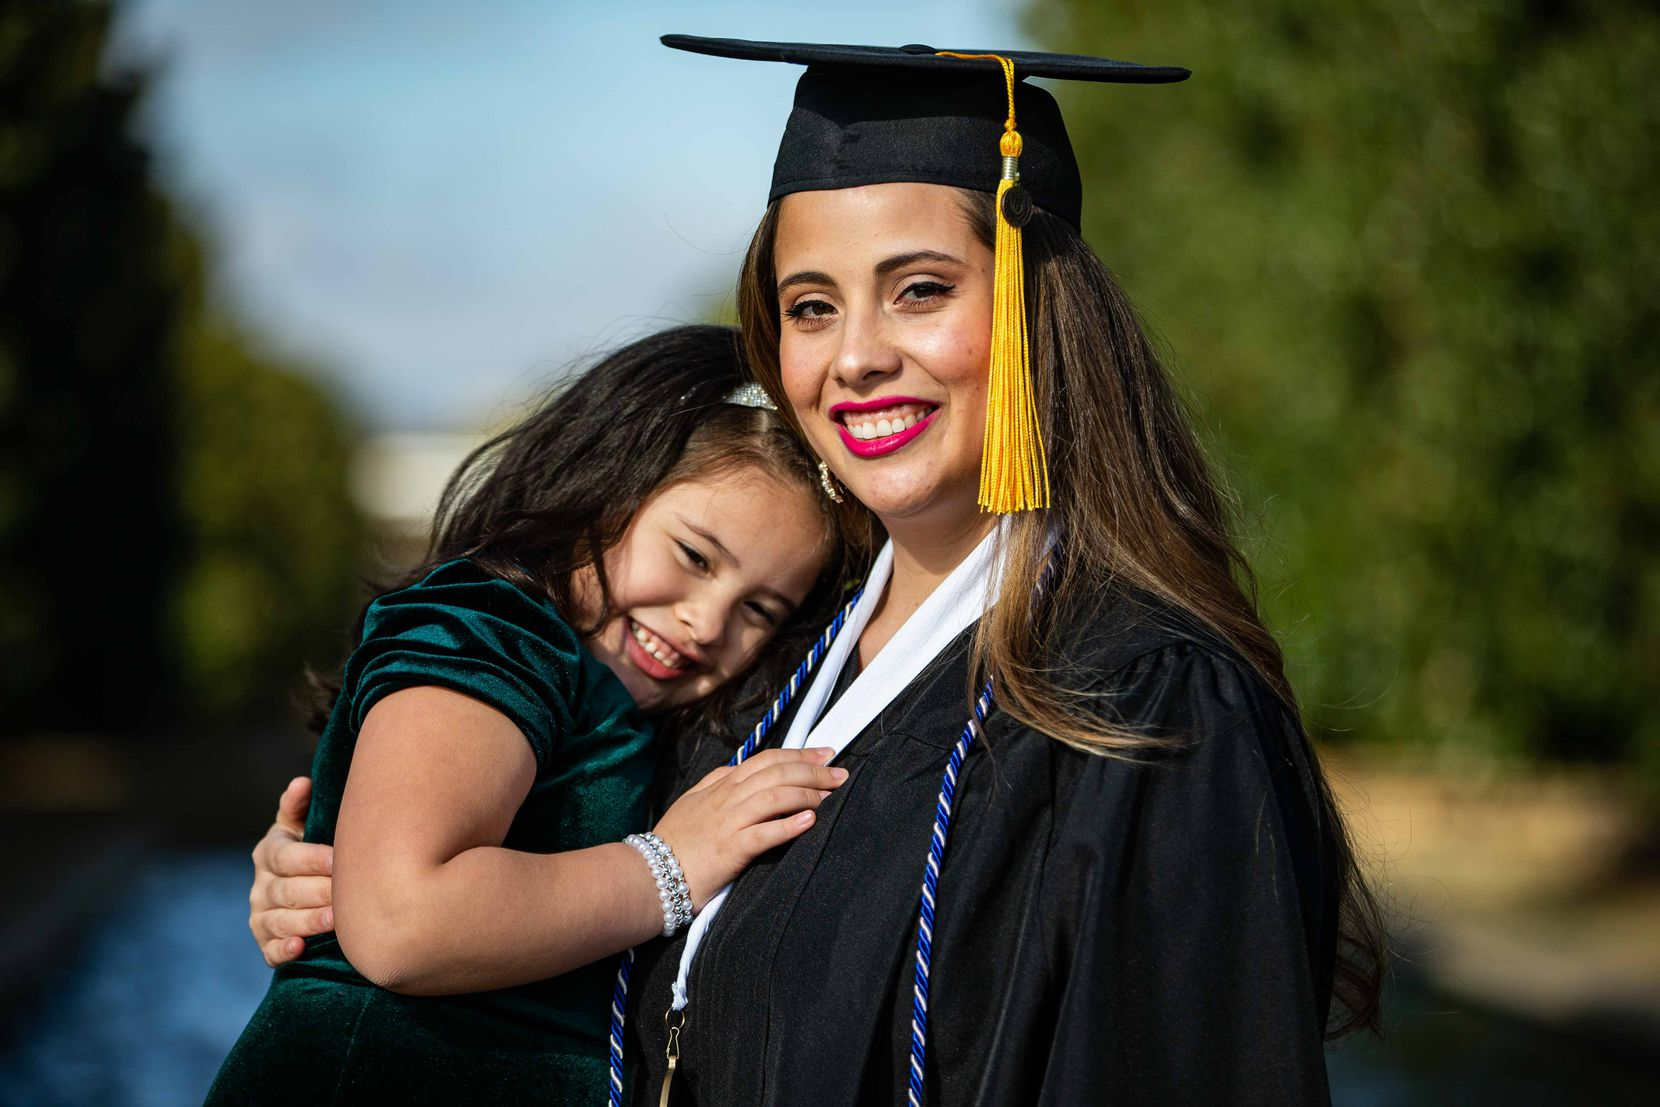 Itzel Ramirez Tapia poses with her cap and gown with her daughter Samantha Tapia, 5, at UTD. Ramirez is a first-generation college student who will graduate this semester with a bachelor's in computer science in Richardson on Wednesday, December 16, 2020. (Lola Gomez/The Dallas Morning News)